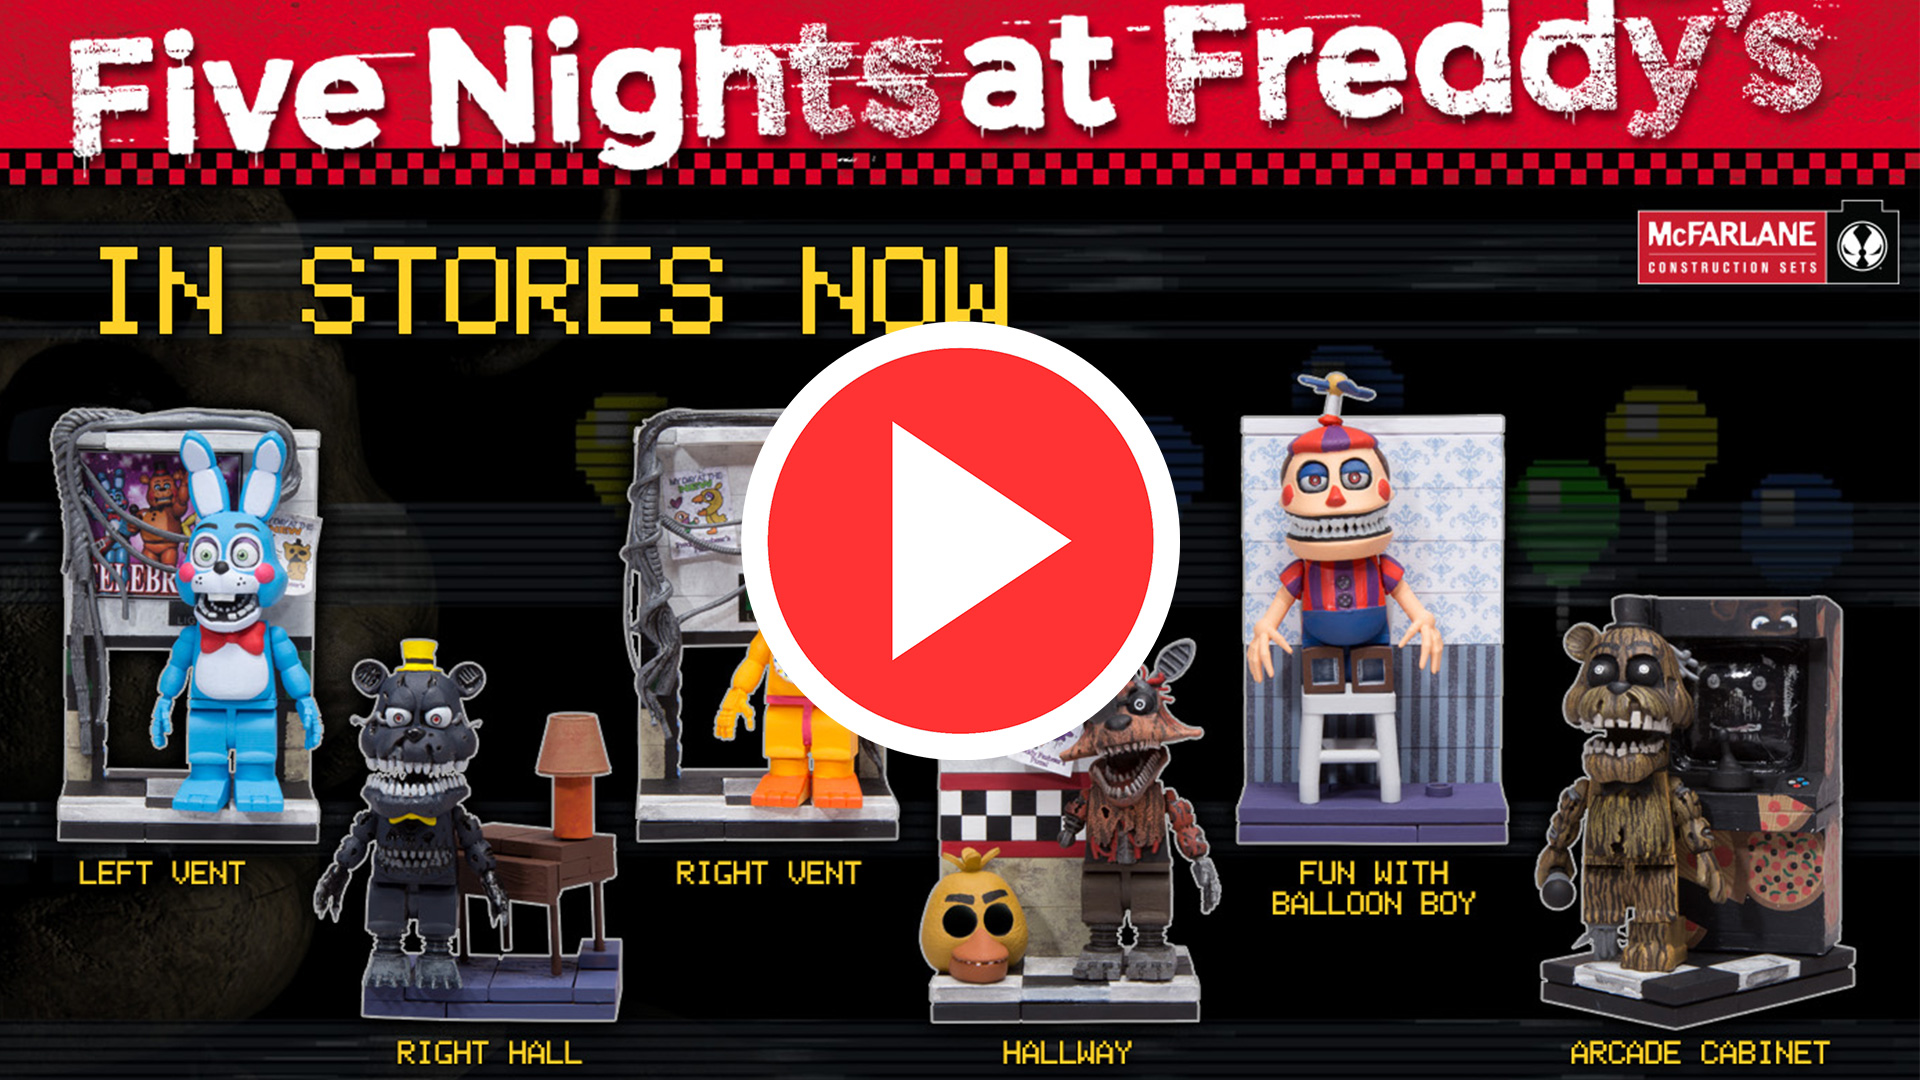 Five nights at freddys pirate cove